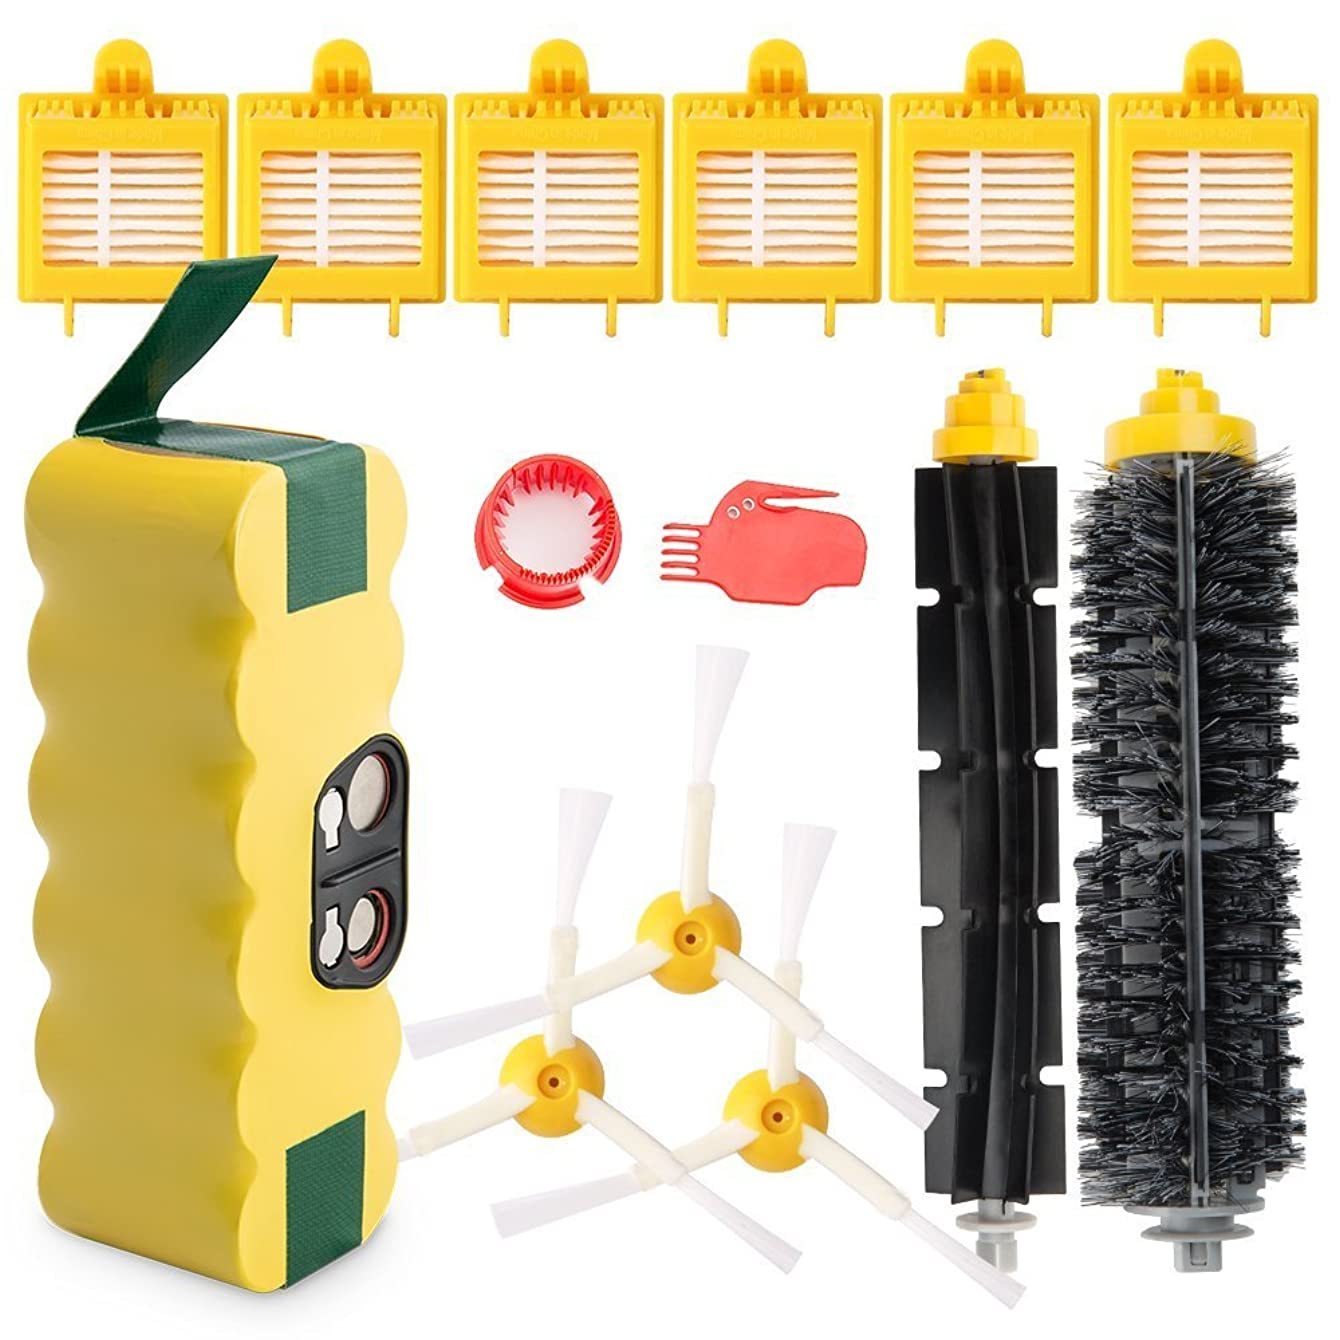 efluky 3.8Ah Ni-MH Replacement Roomba Battery + Replacement Accessory Part Kit for iRobot Roomba 700 Series 700 720 750 760 765 770 772 772e 774 775 776 776p 780 782 782e 785 786 786p 790- a set of 14